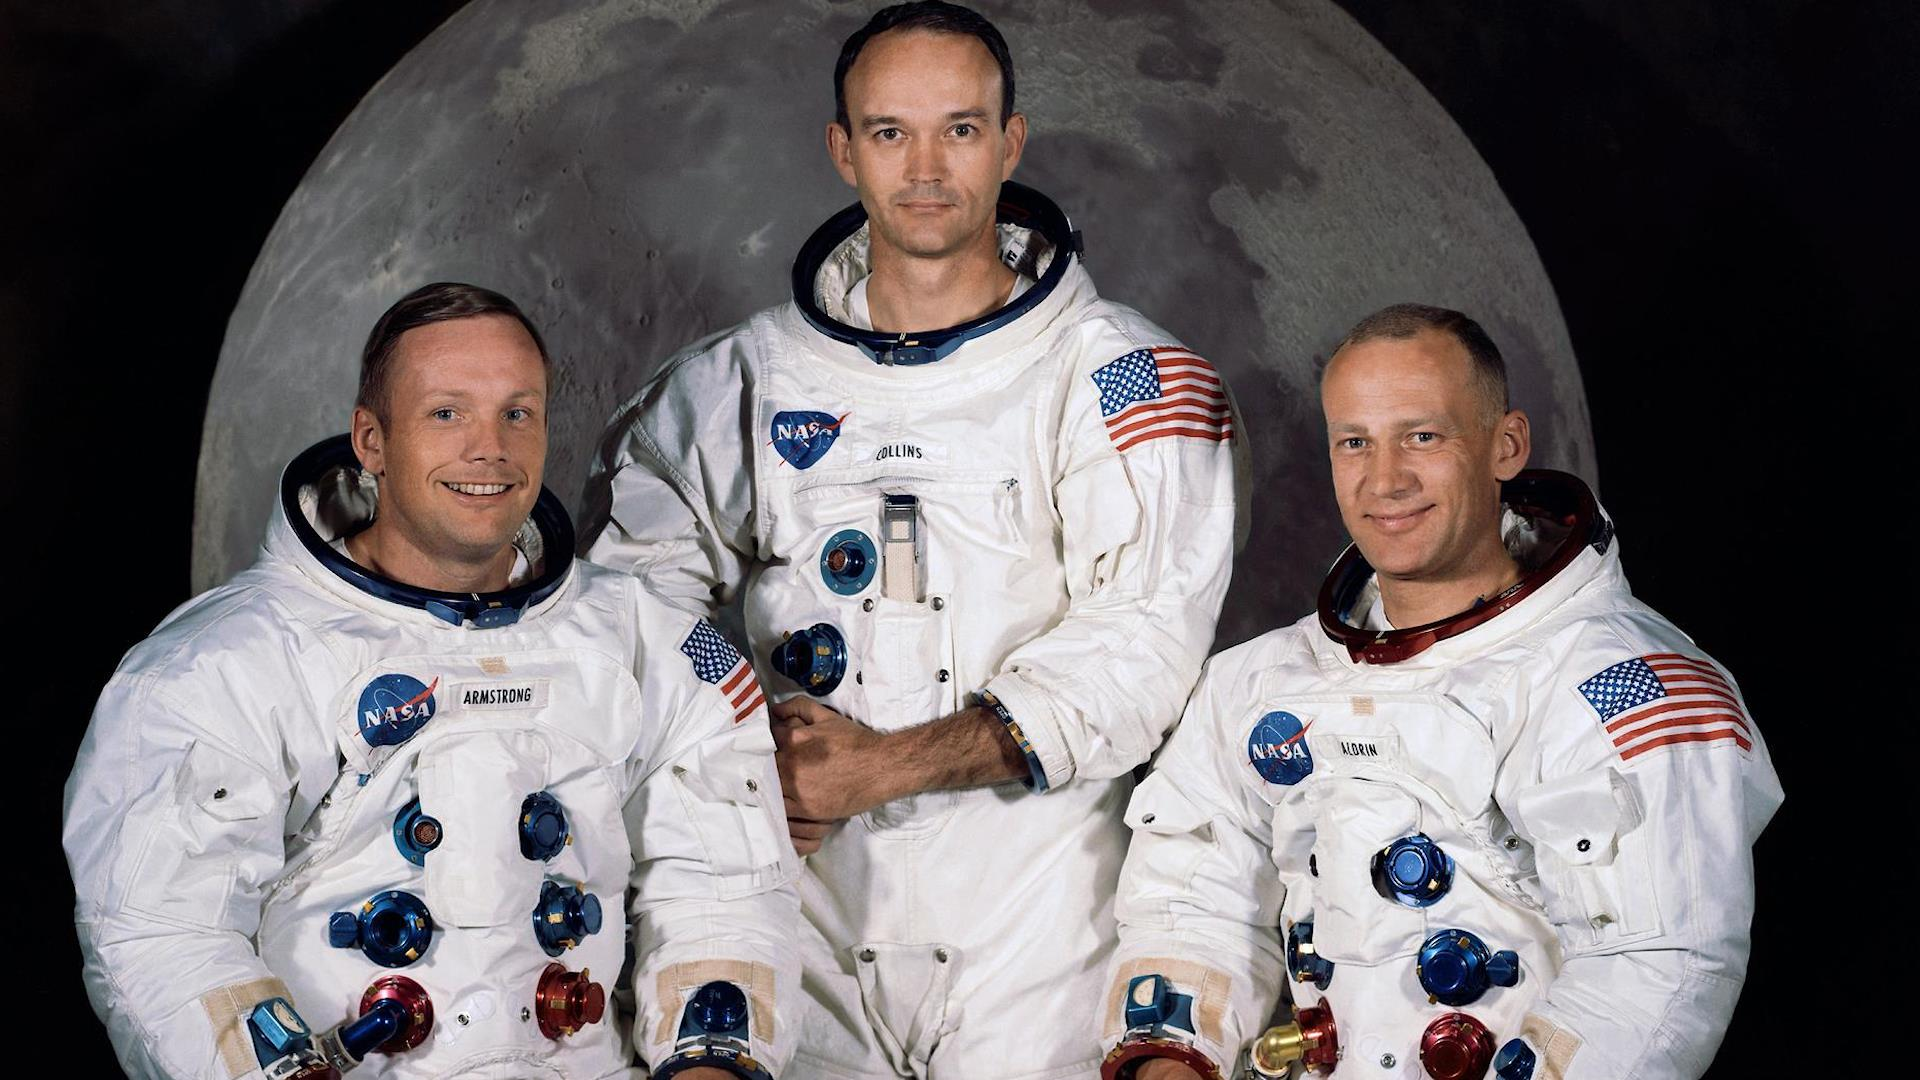 Apollo 11: Eleven things you never knew about NASA's landmark moon mission